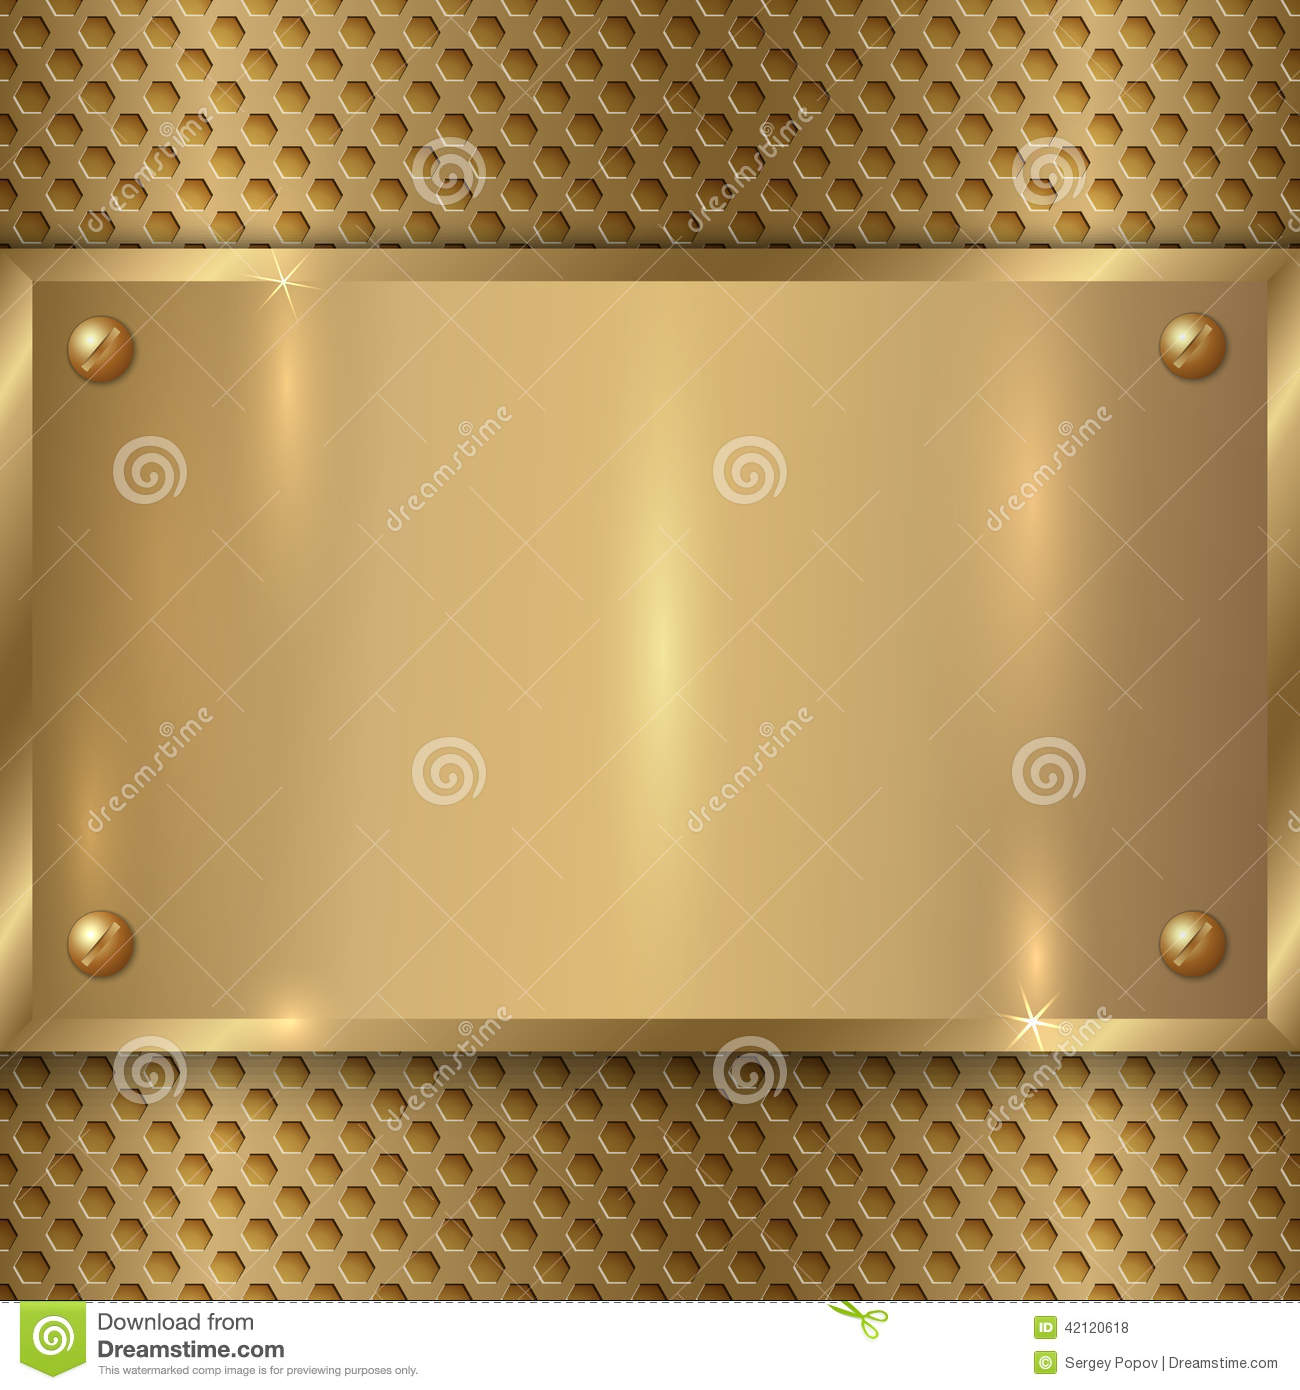 vector abstract metal old gold plaque on the cell stock vector image 42120618. Black Bedroom Furniture Sets. Home Design Ideas